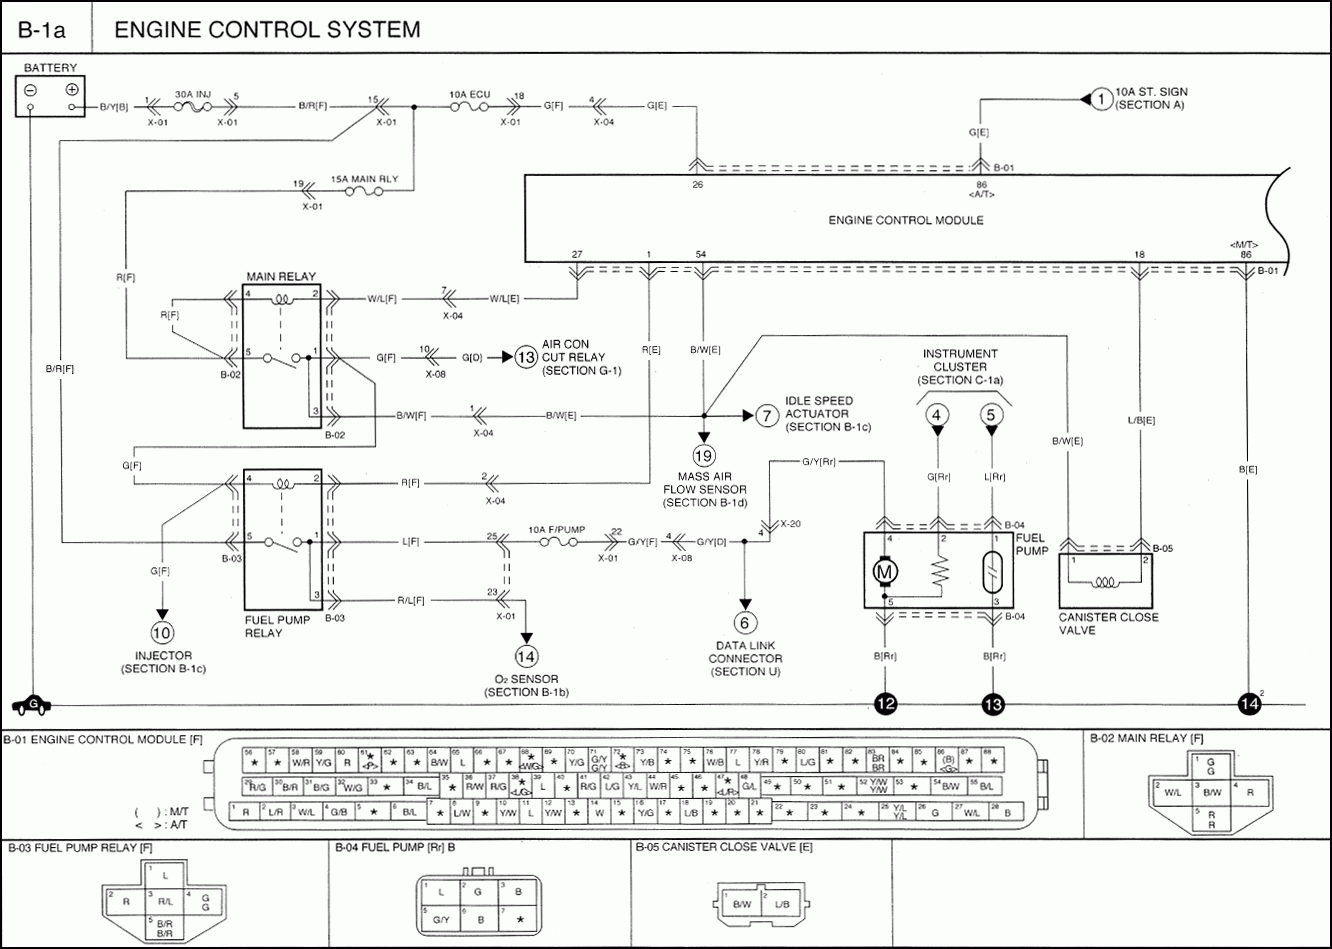 2006 Kia Rio Injector Wiring Diagram from static-cdn.imageservice.cloud